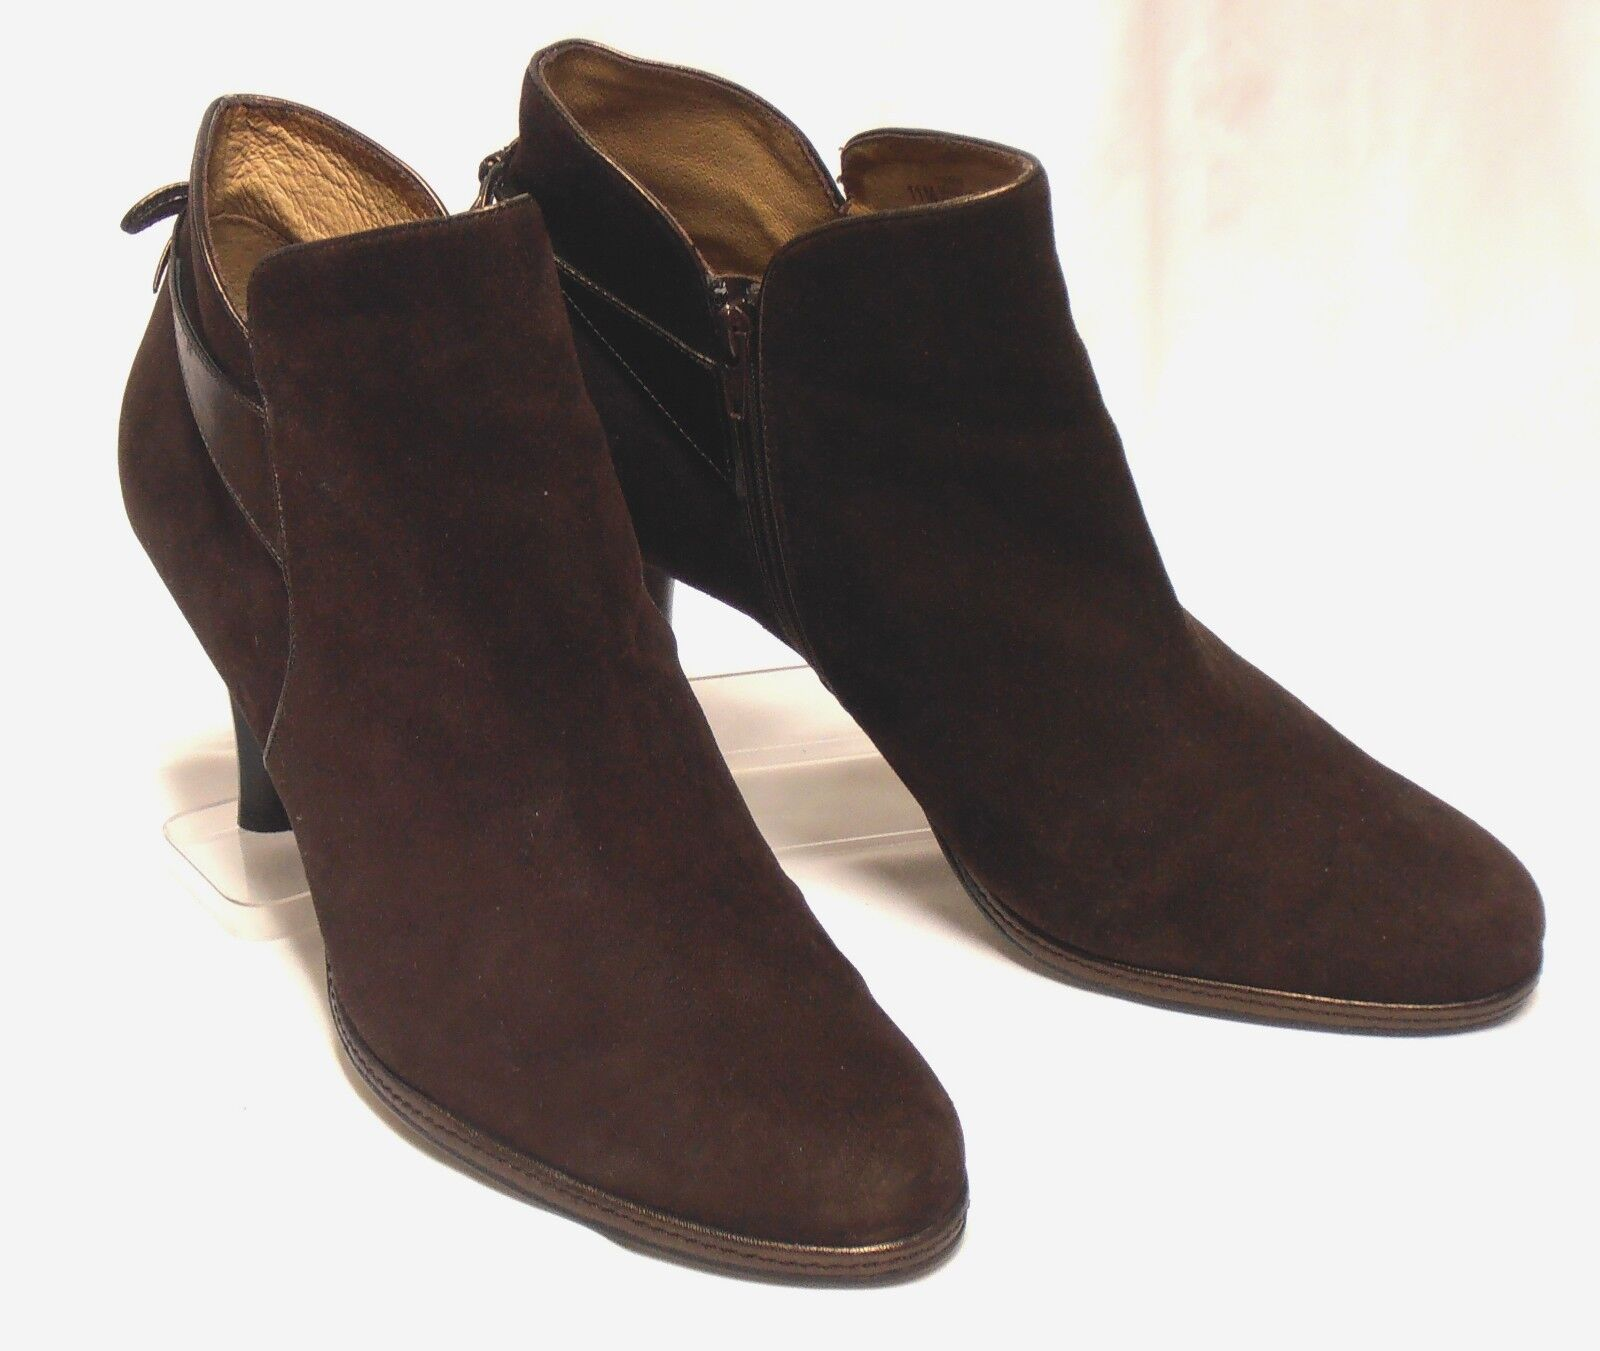 SOFFT Size 11 Brown Suede Leather Bronze Detailed Side-Zip High-Heel Ankle Boots